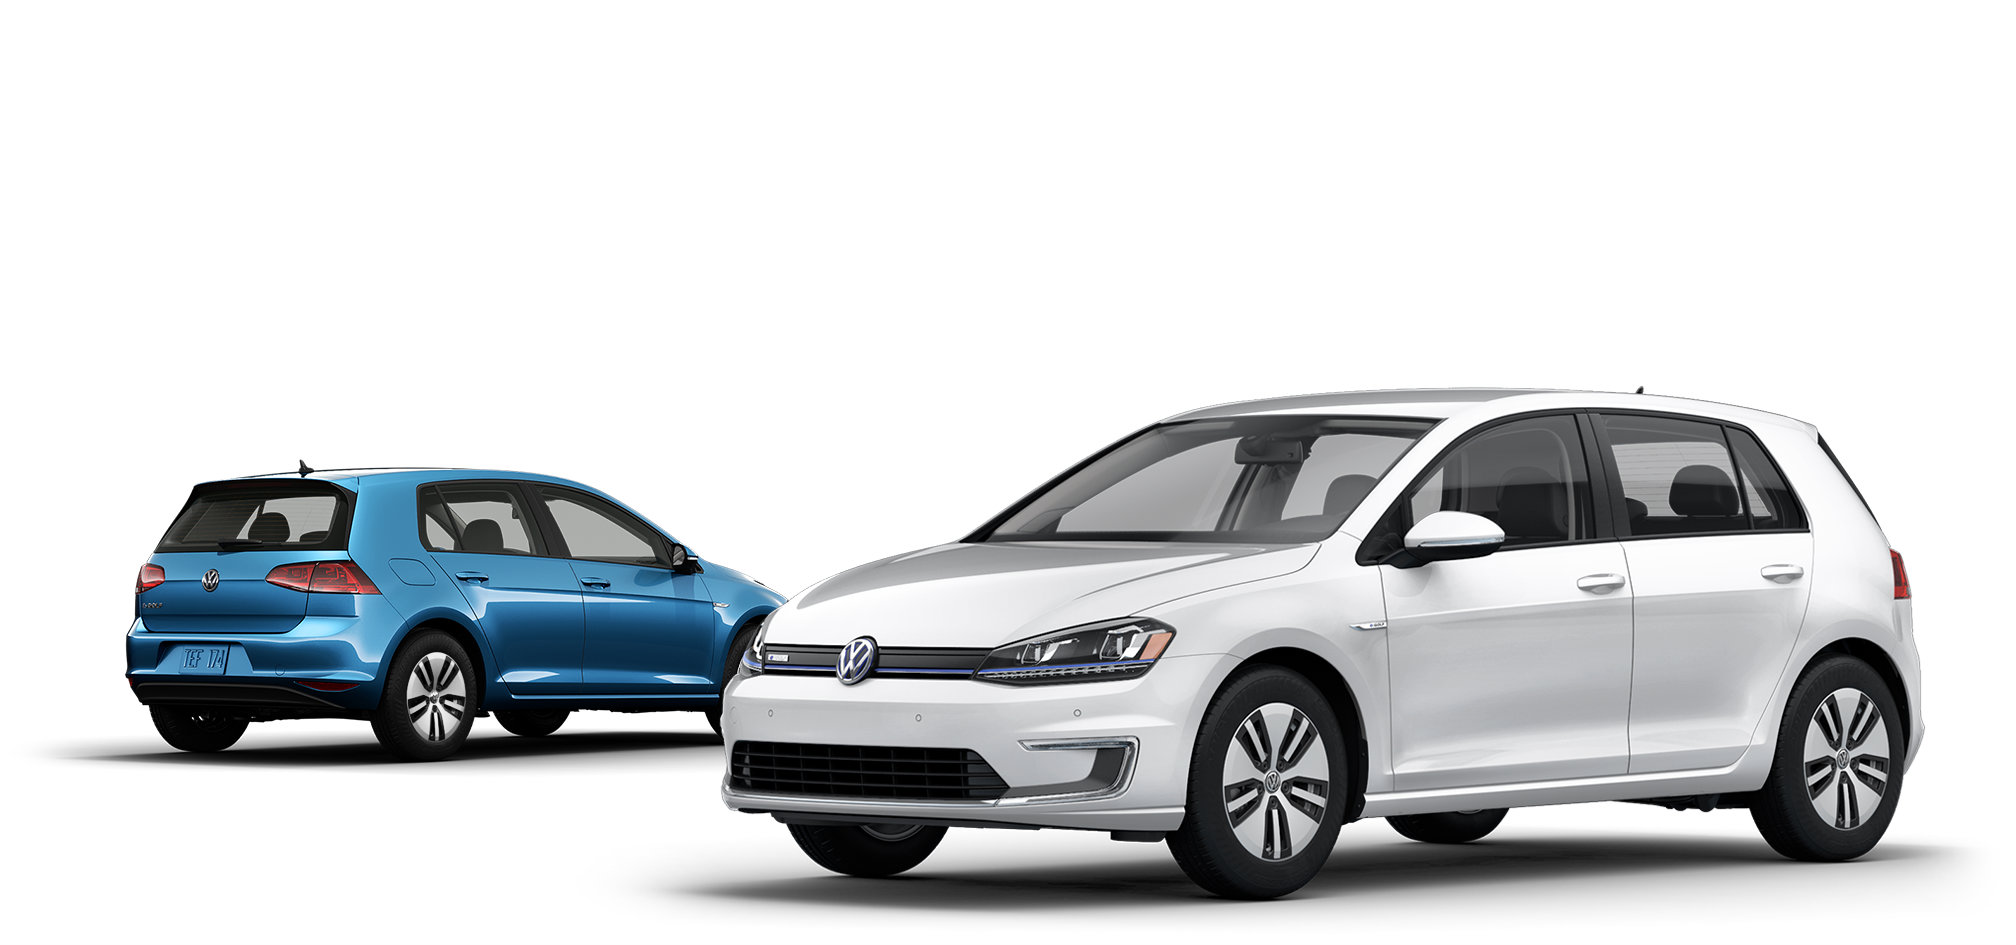 volkswagen recalls e golf over software problem autoevolution. Black Bedroom Furniture Sets. Home Design Ideas